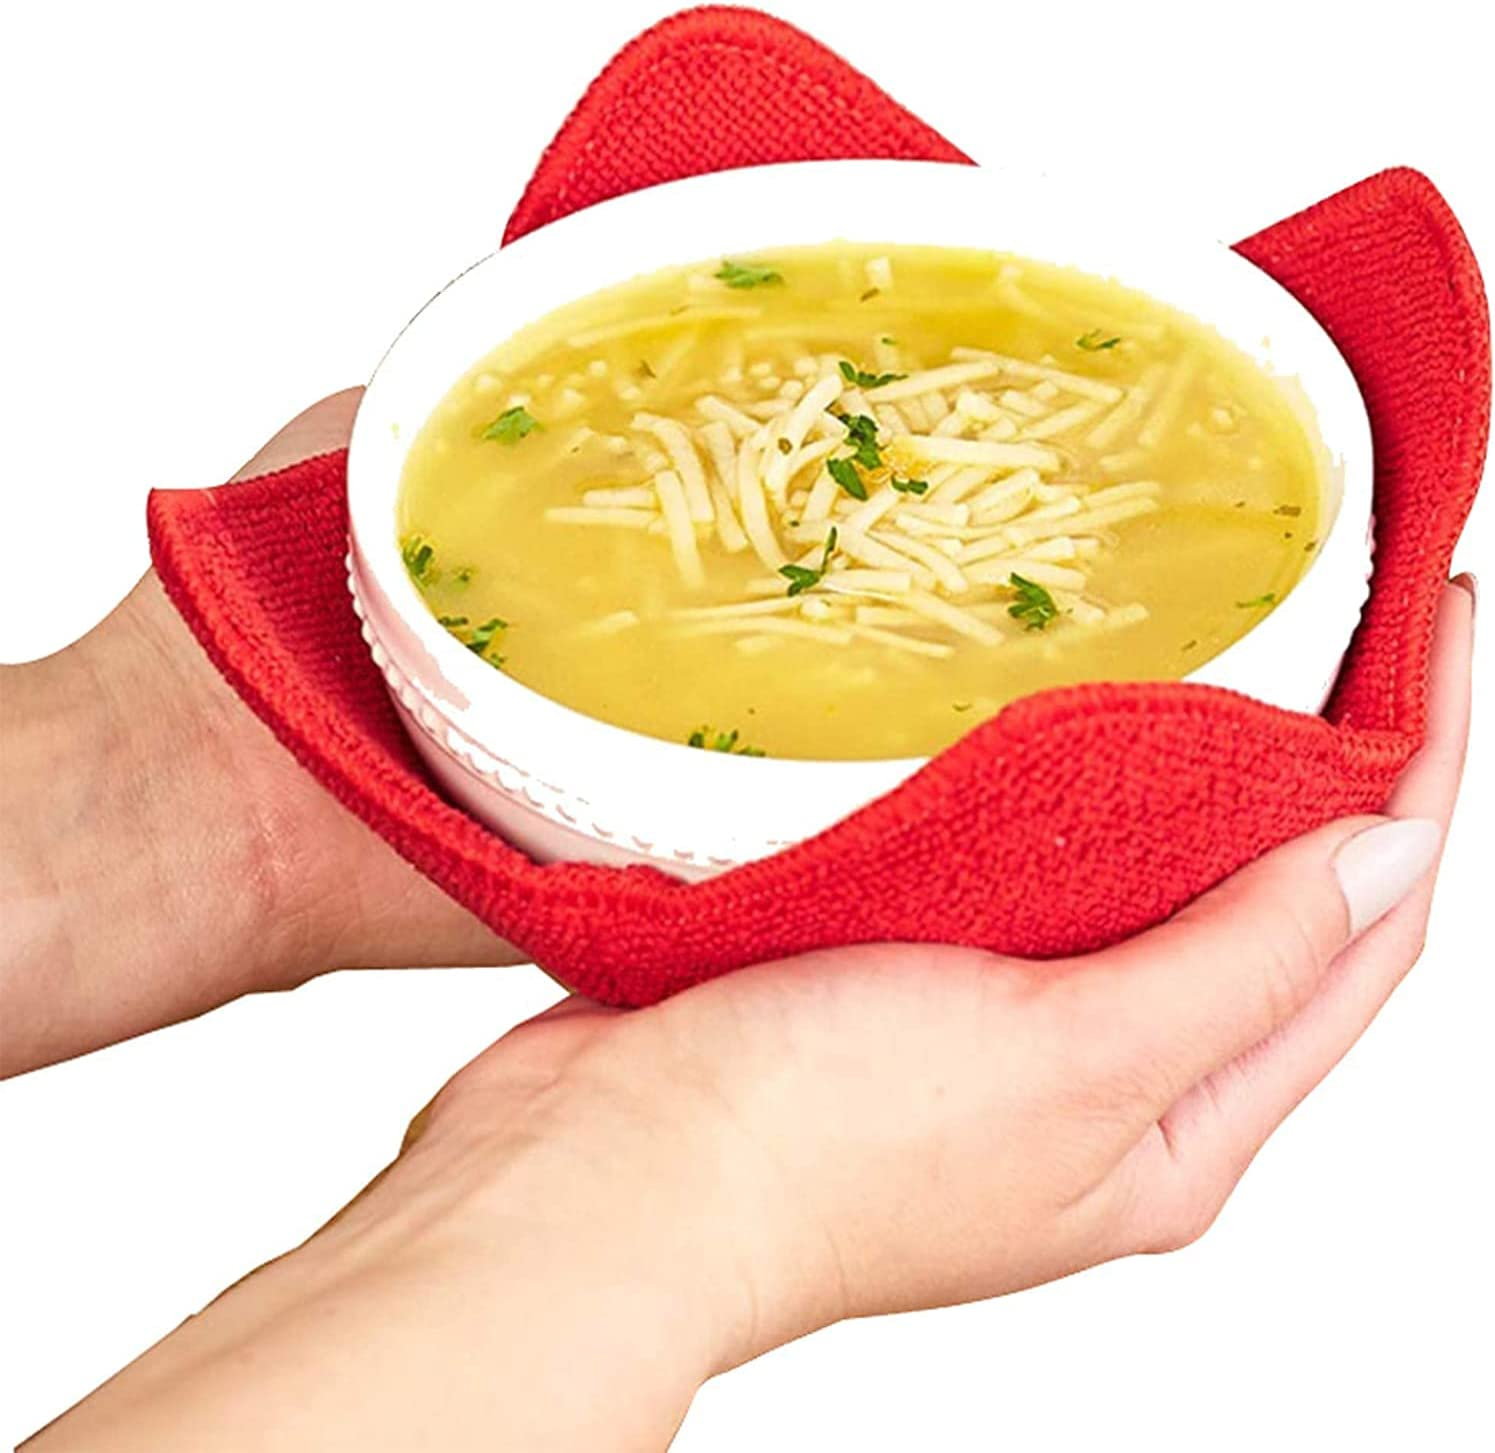 Microwave Bowl Huggers Warmers for Food Microfiber Heat Resistant Food Warmer Set Microwave Safe Handle Hot and Cold Bowls Holder Without Burning Your Hands Set of 4 Microwave Bowl Huggers